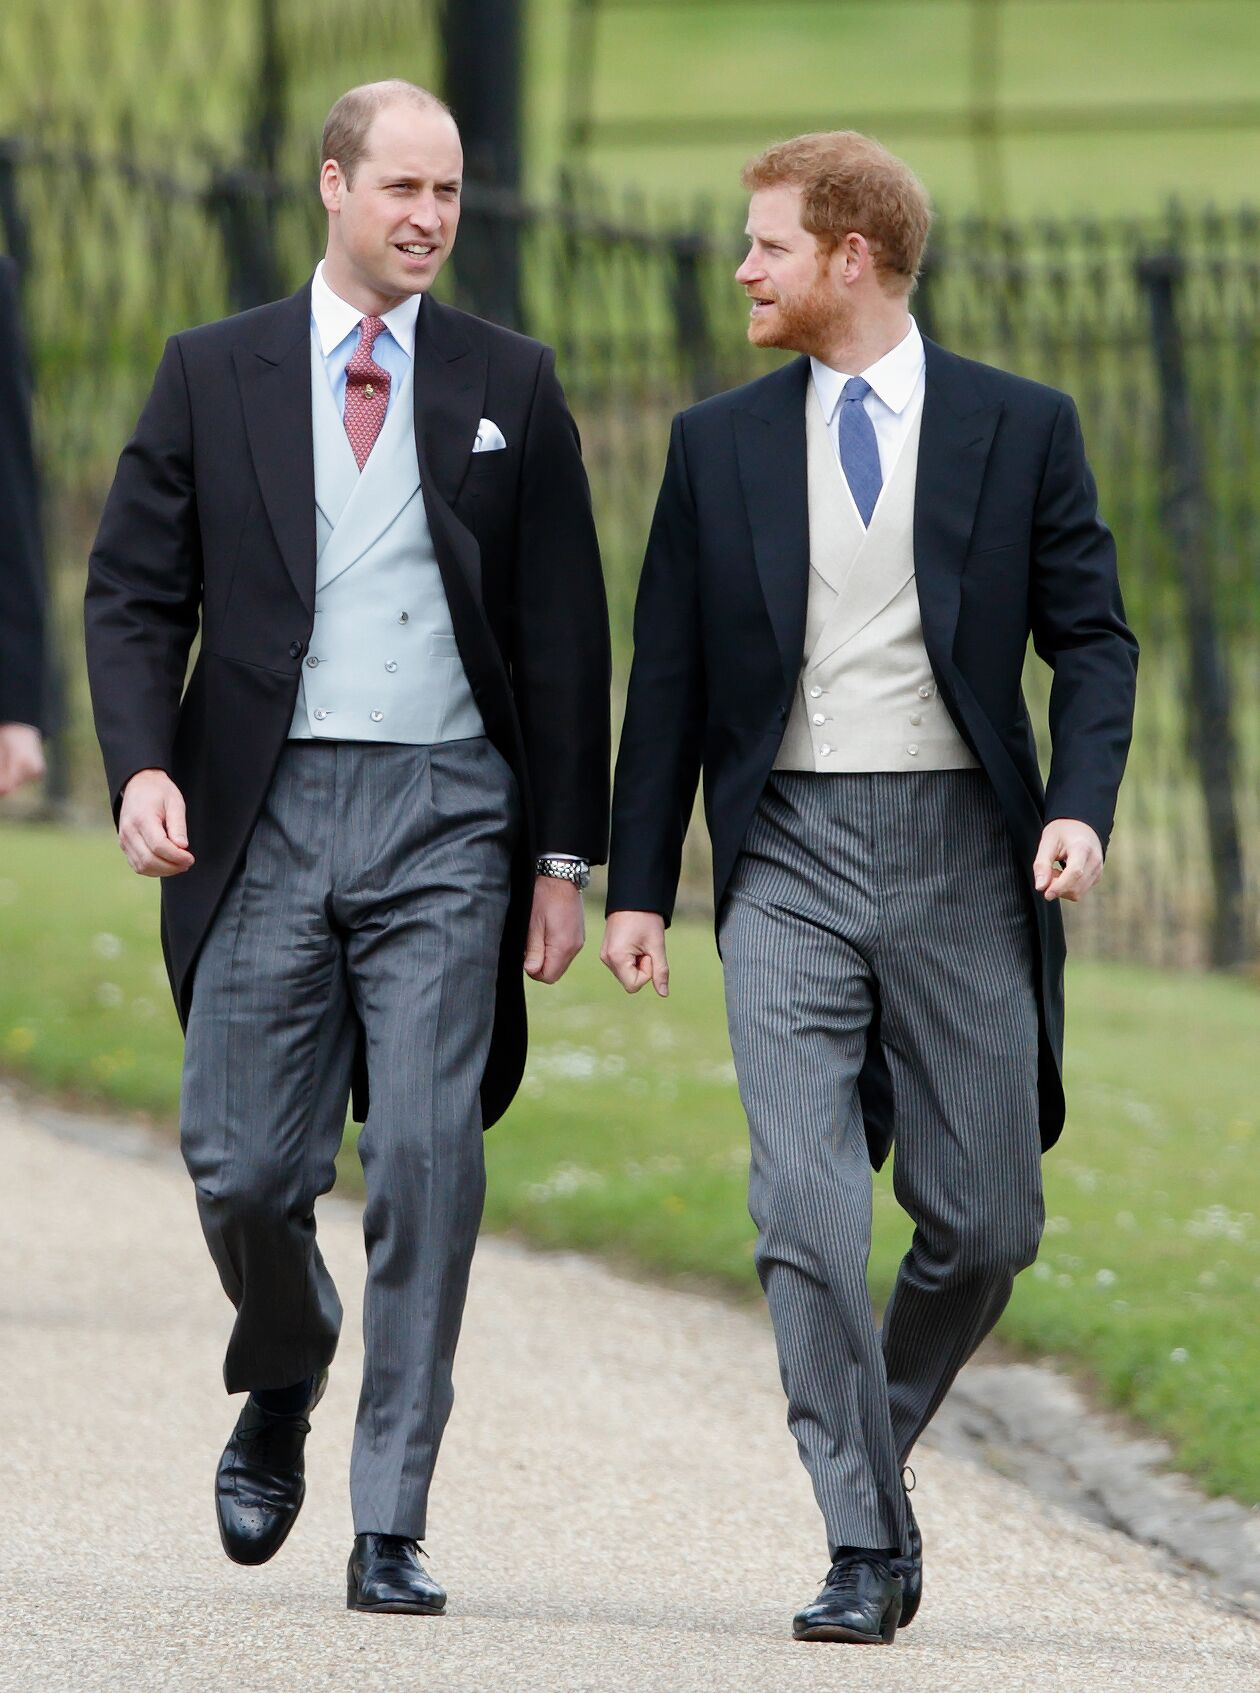 Prince William, Duke of Cambridge and Prince Harry attend the wedding of Pippa Middleton and James Matthews | Getty Images